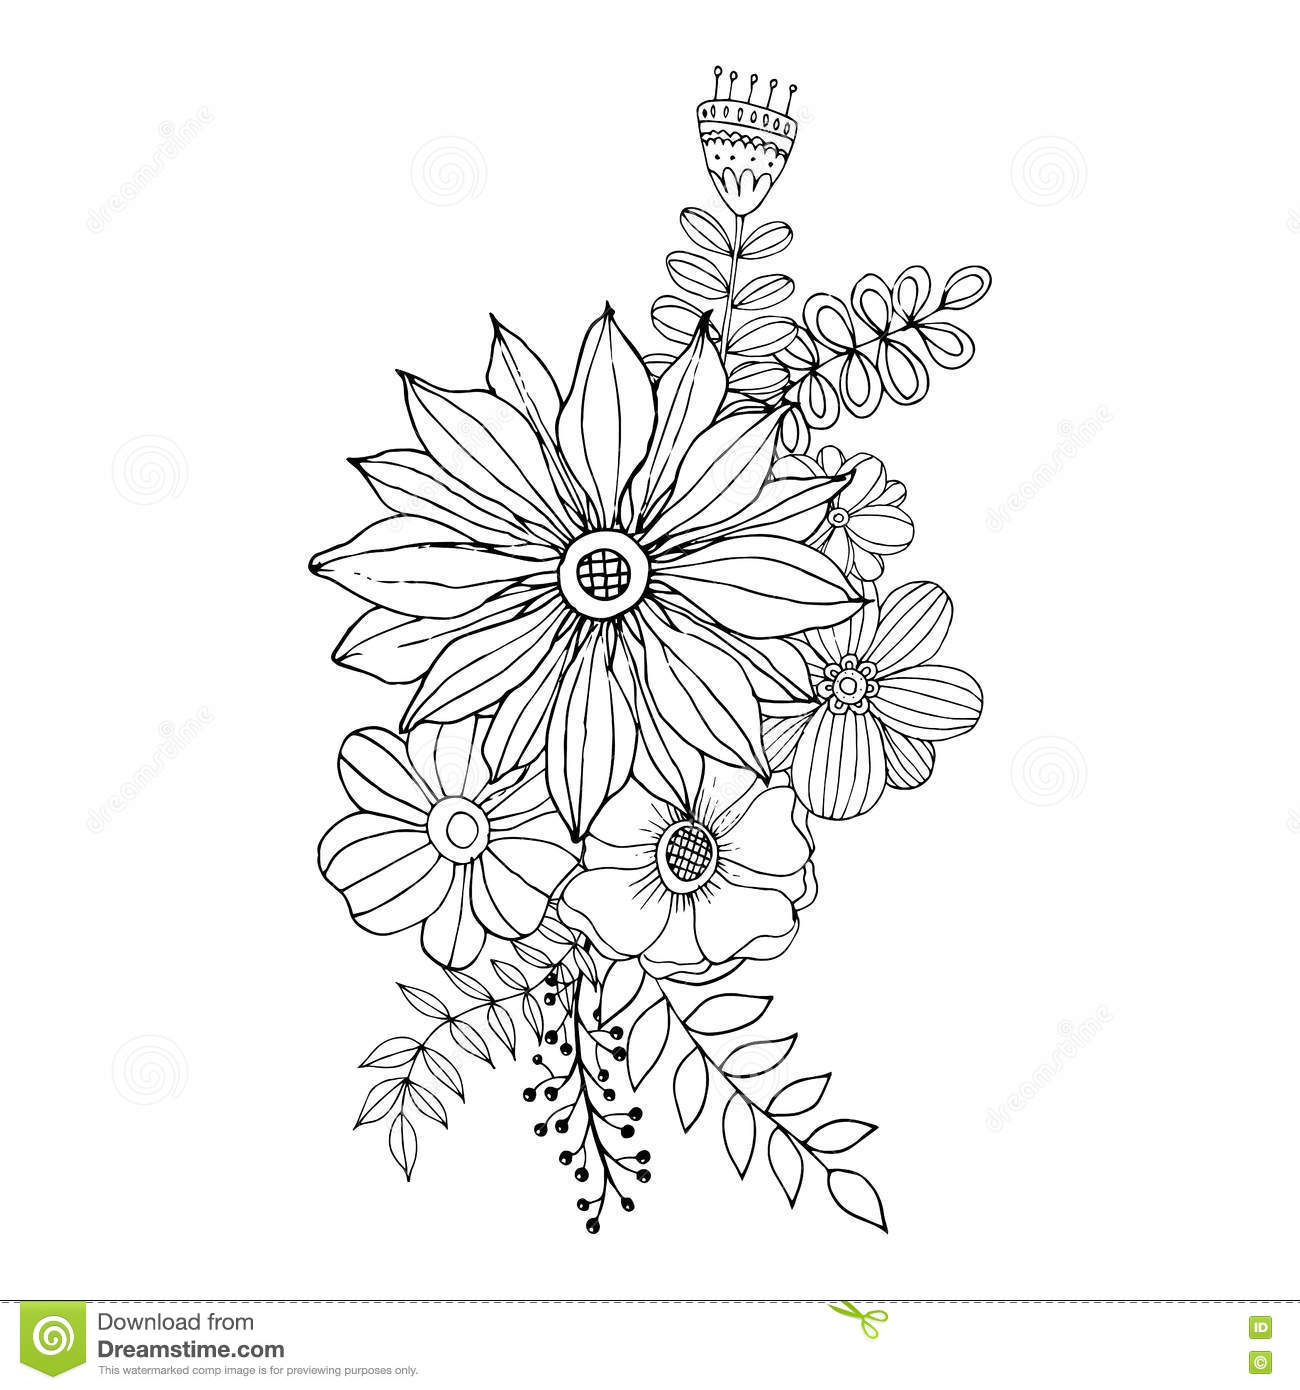 flower doodle drawing freehand coloring page with doodle stock